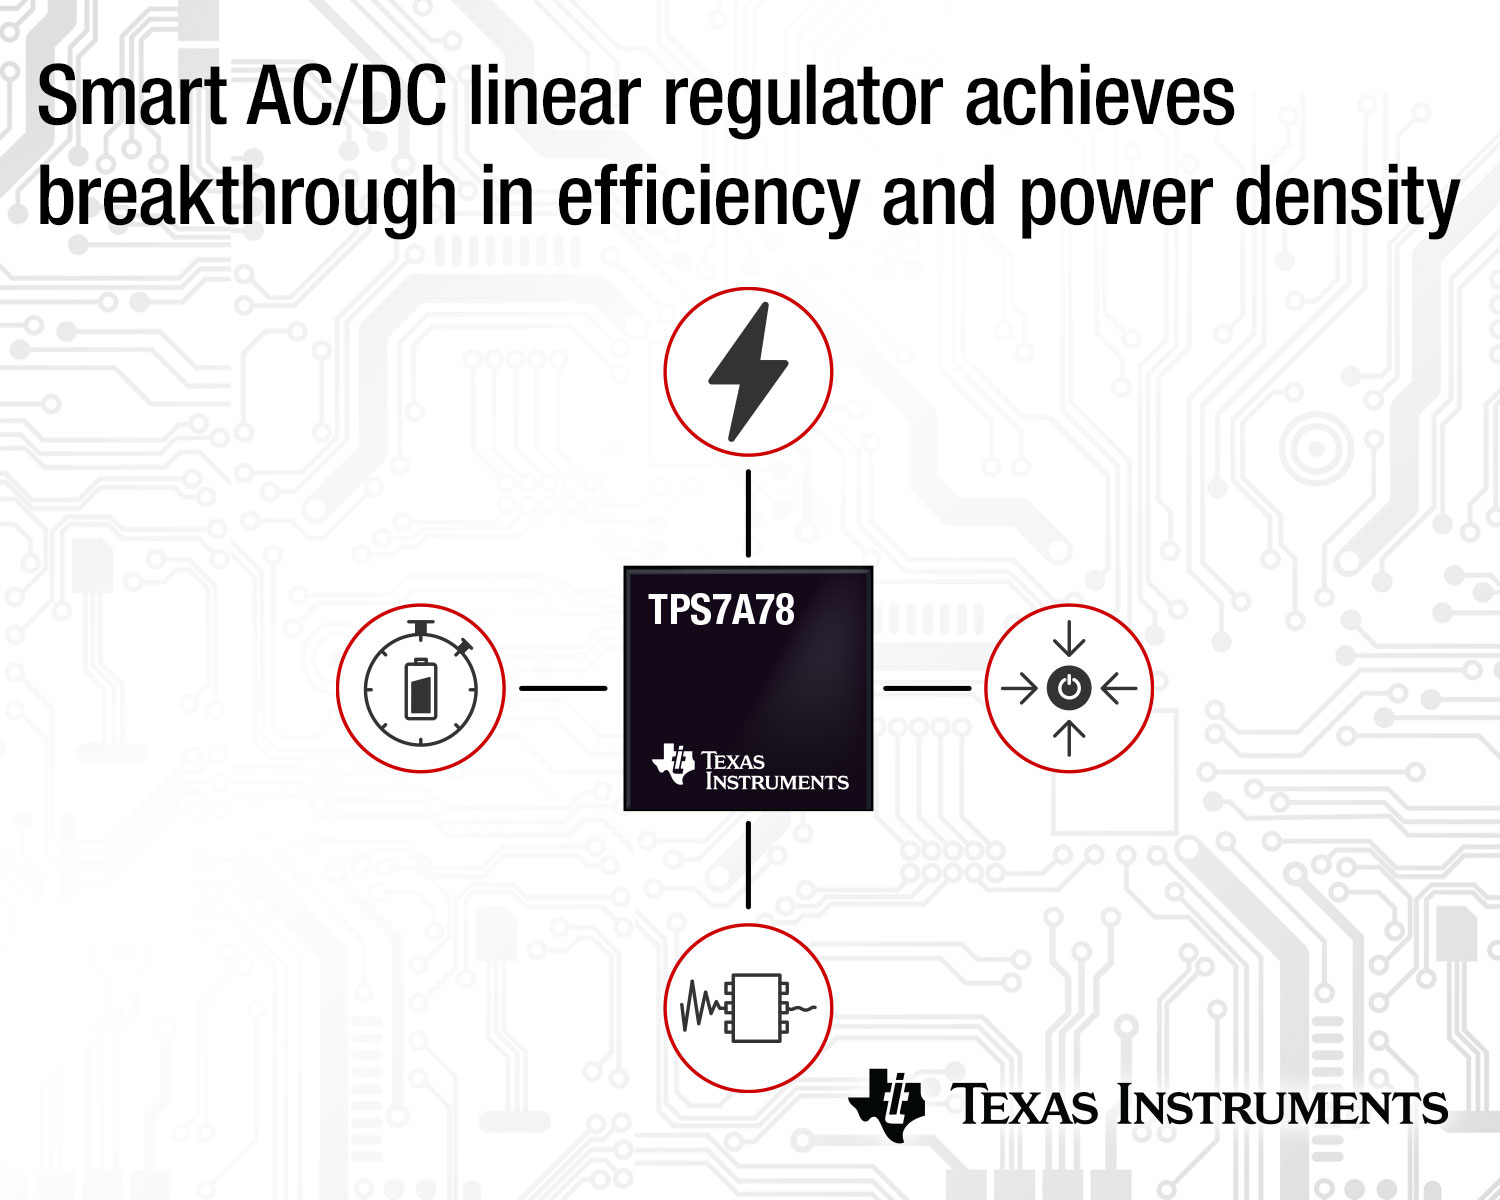 AC/DC Linear Regulator Features 75 Percent Higher Efficiency